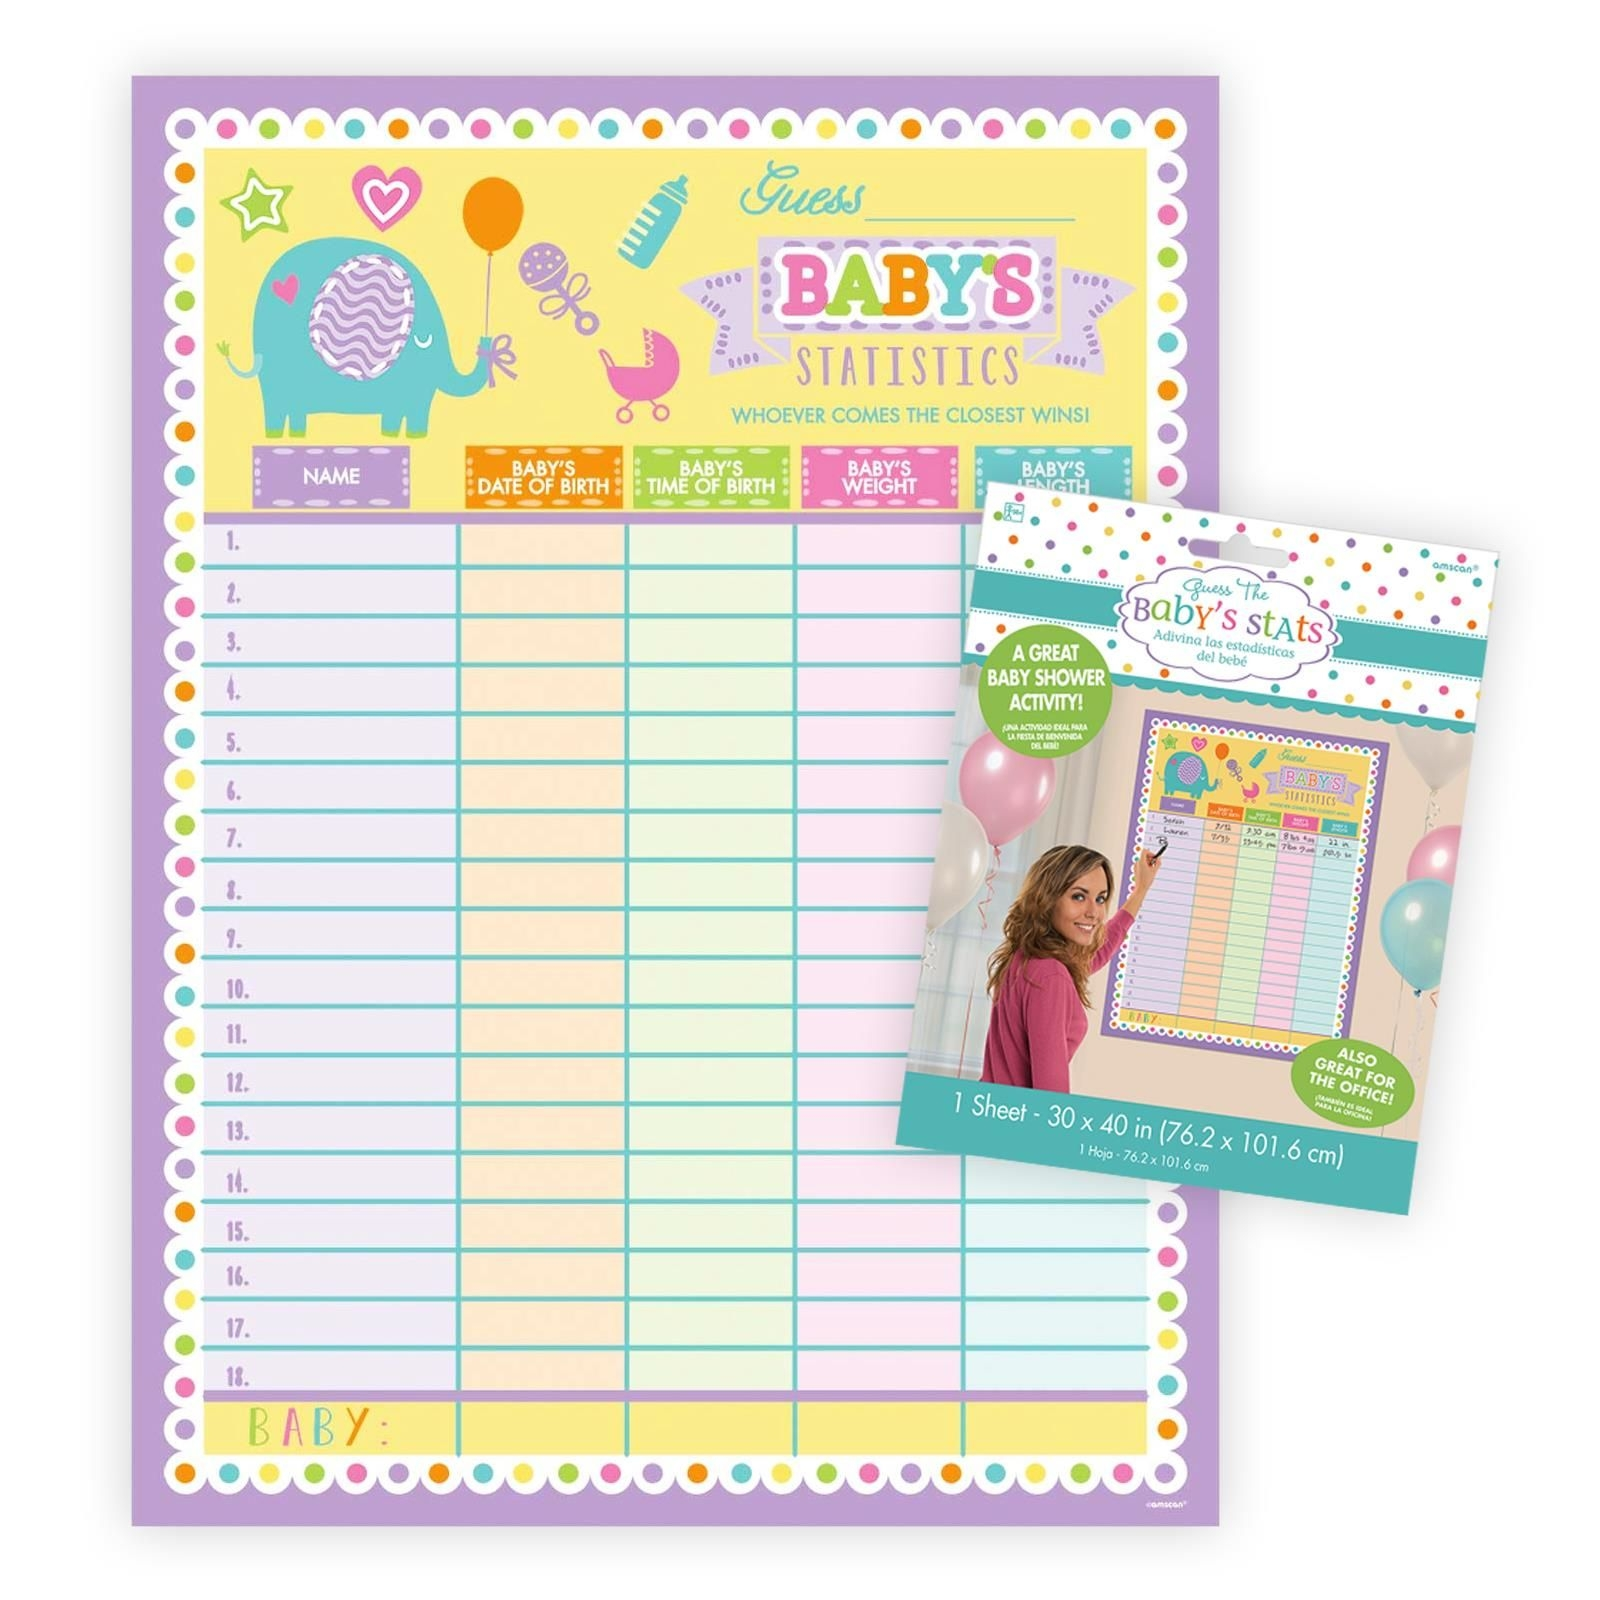 Details About Guess The Baby's Statistics Baby Shower Party Game Activity  Weight Date Poster